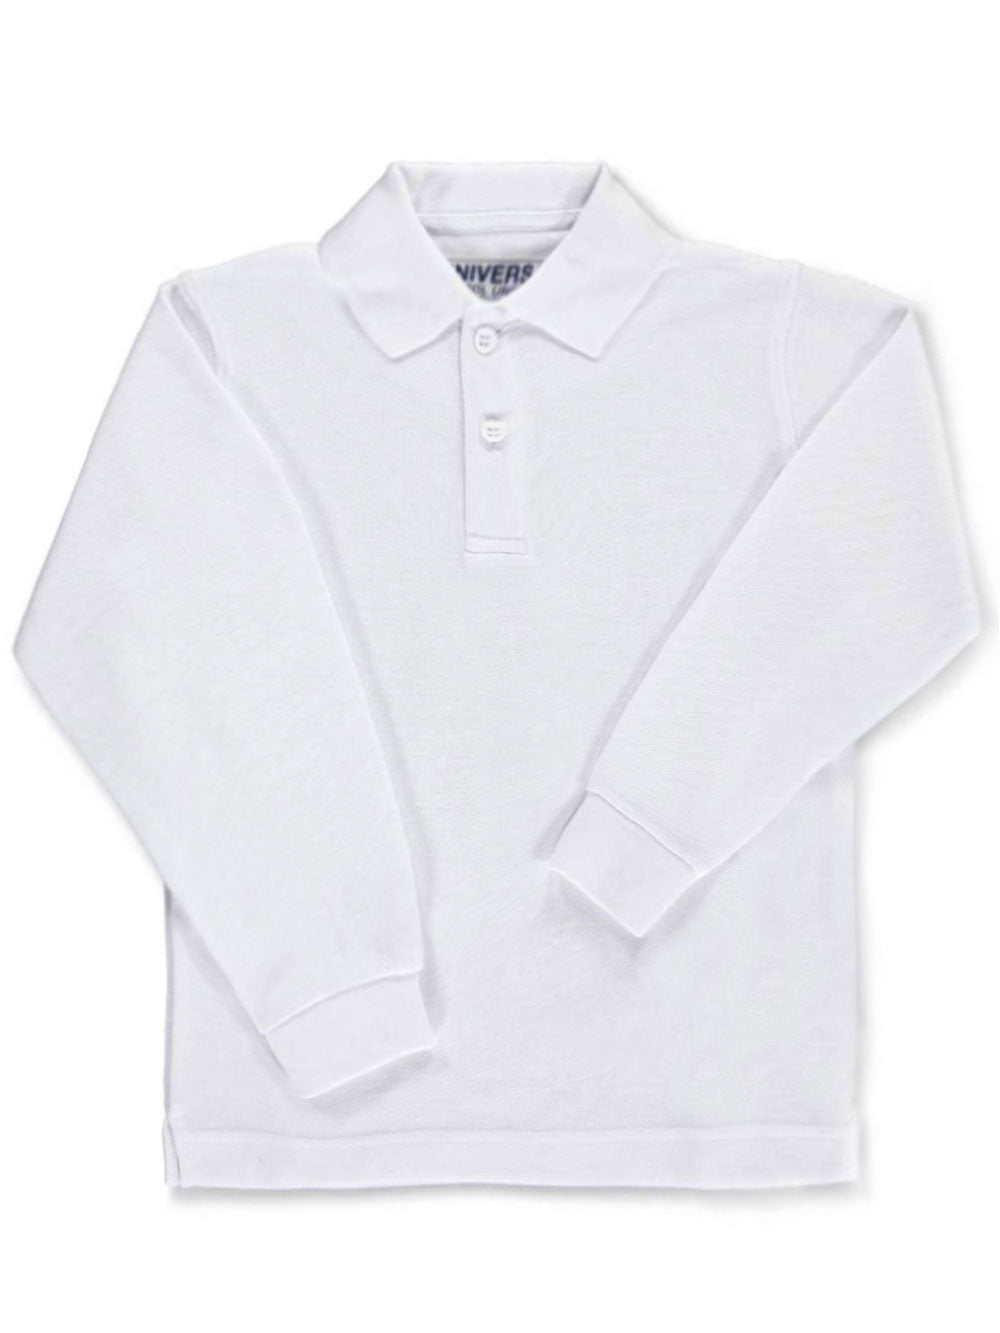 LONG SLEEVE POLO - WHITE - Made by McNamara